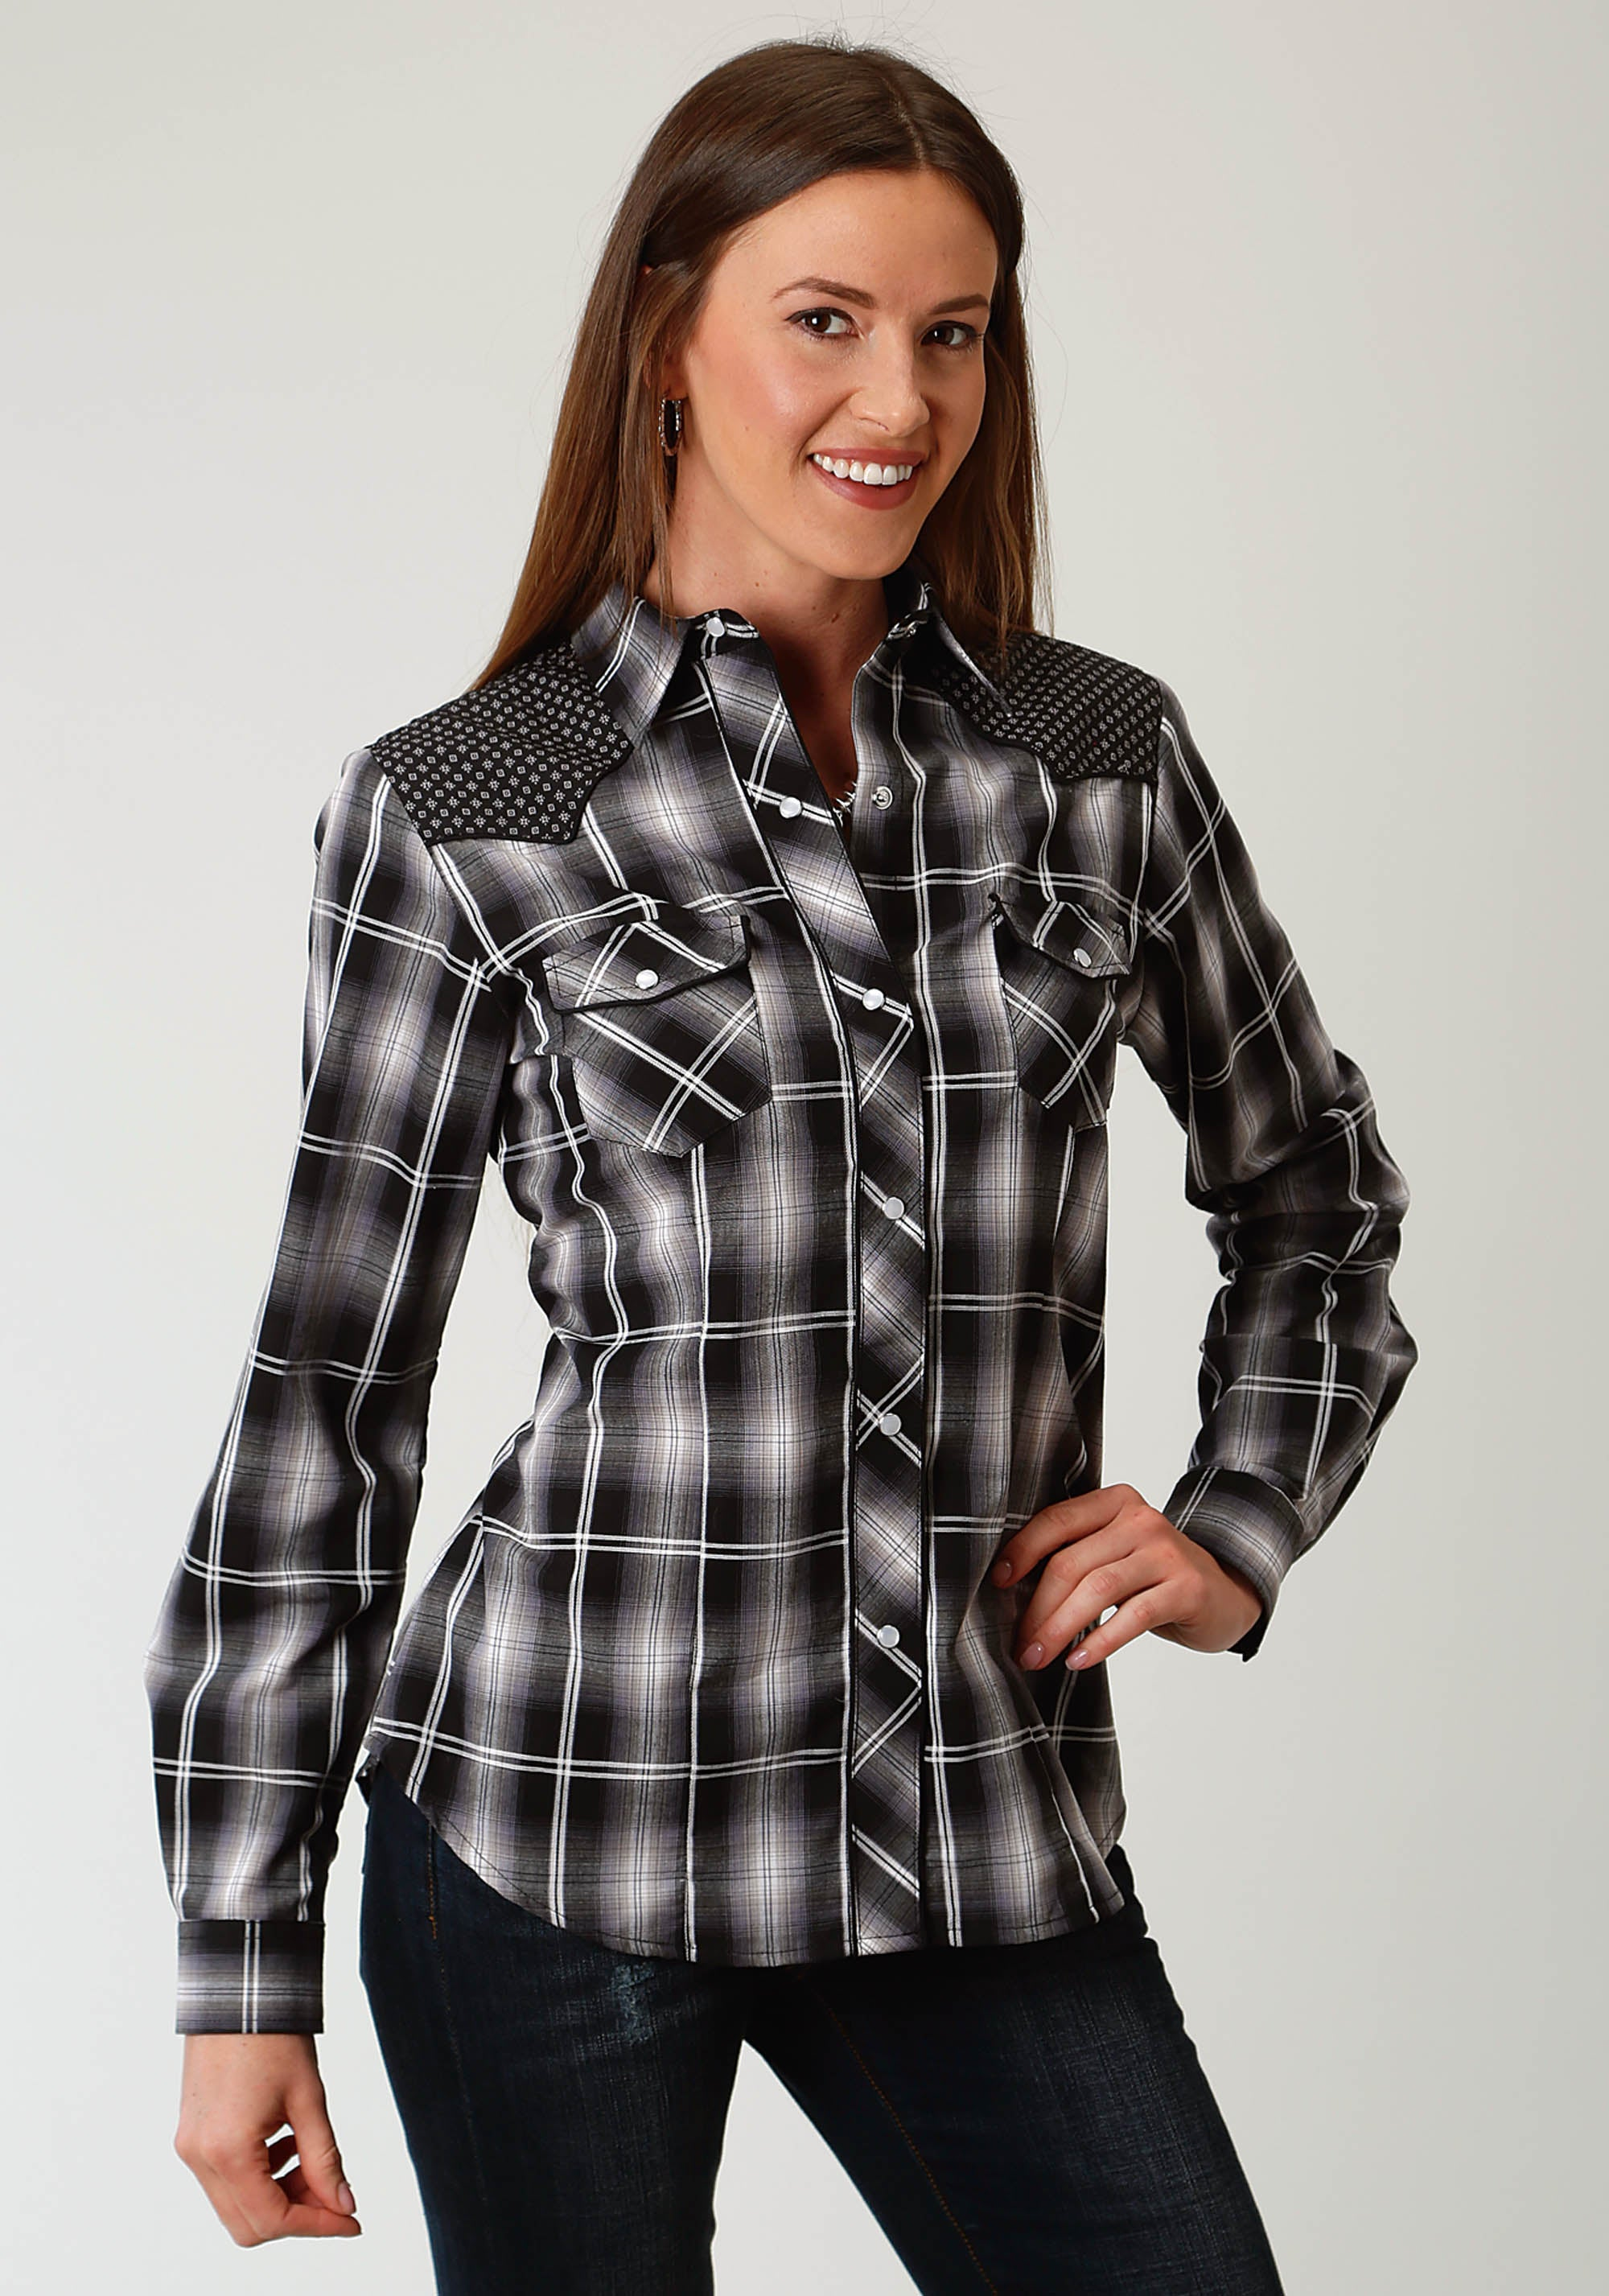 ROPER WOMENS BLACK 1926 BLACK, GREY, & SAGE PLAID KARMAN SPECIAL STYLES LONG SLEEVE